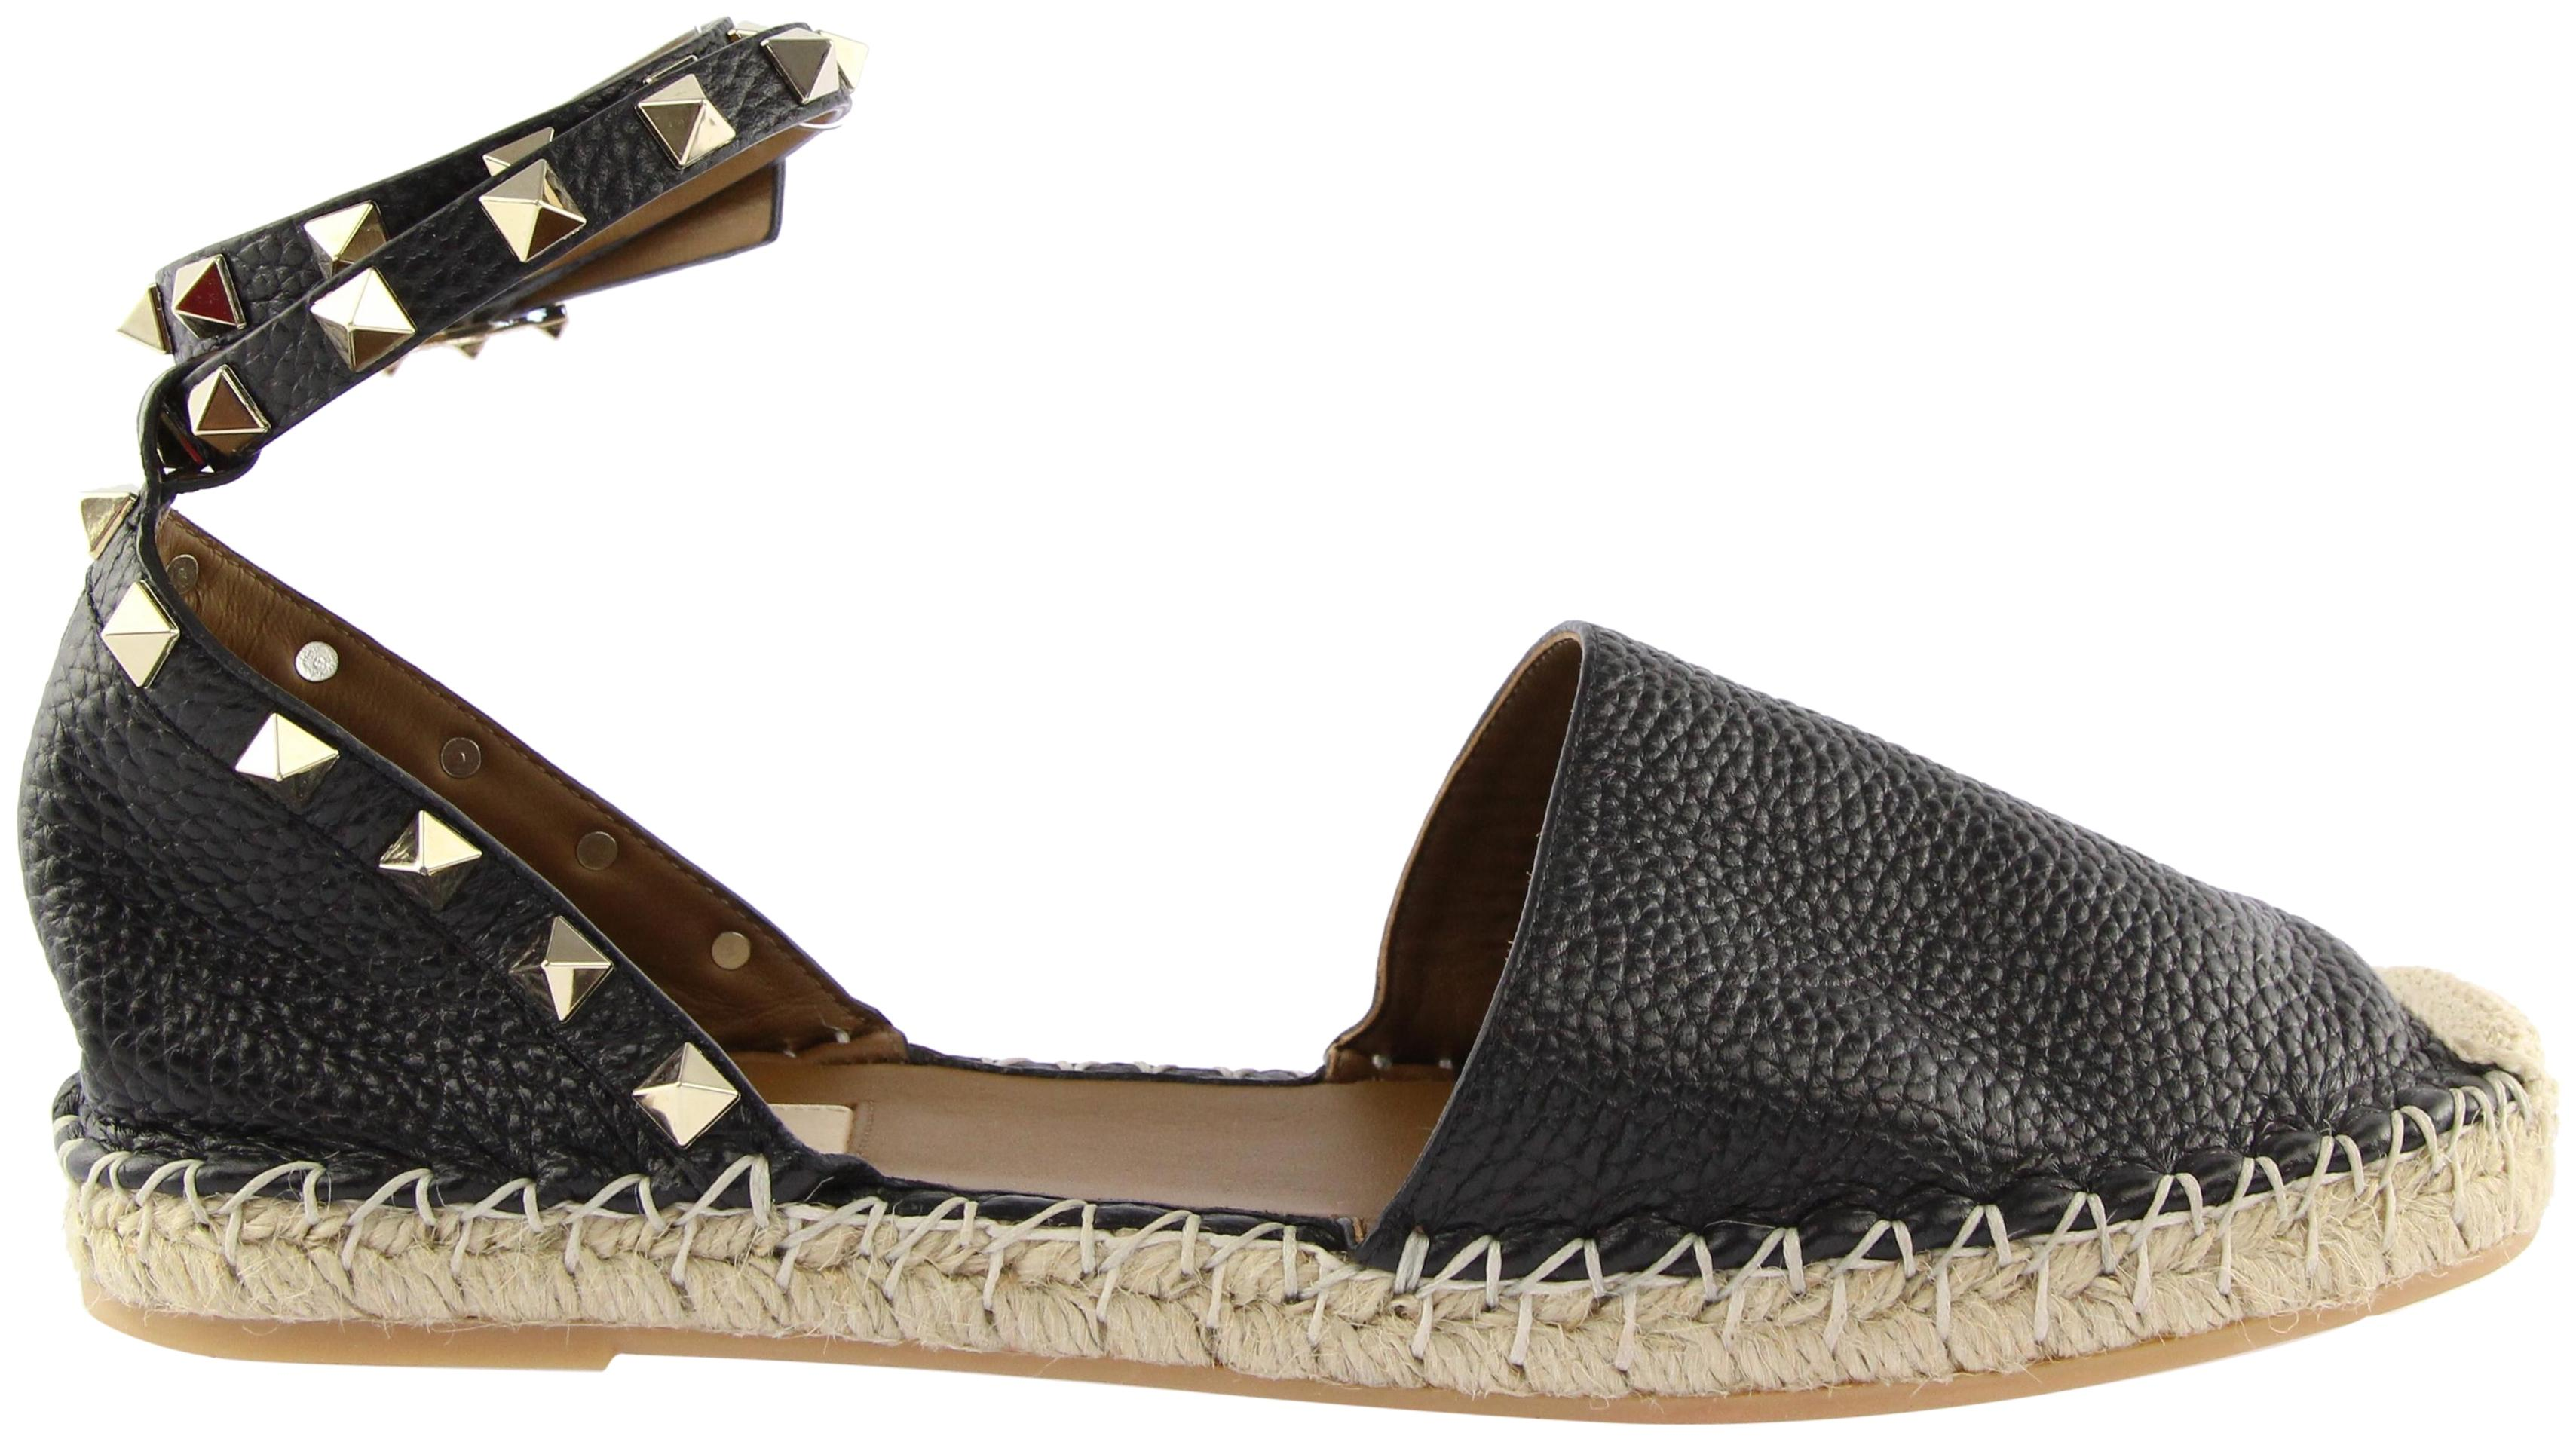 Valentino Black Double Strap Rockstud Leather Espadrille Flats Size EU 39 (Approx. US 9) Regular (M, B)